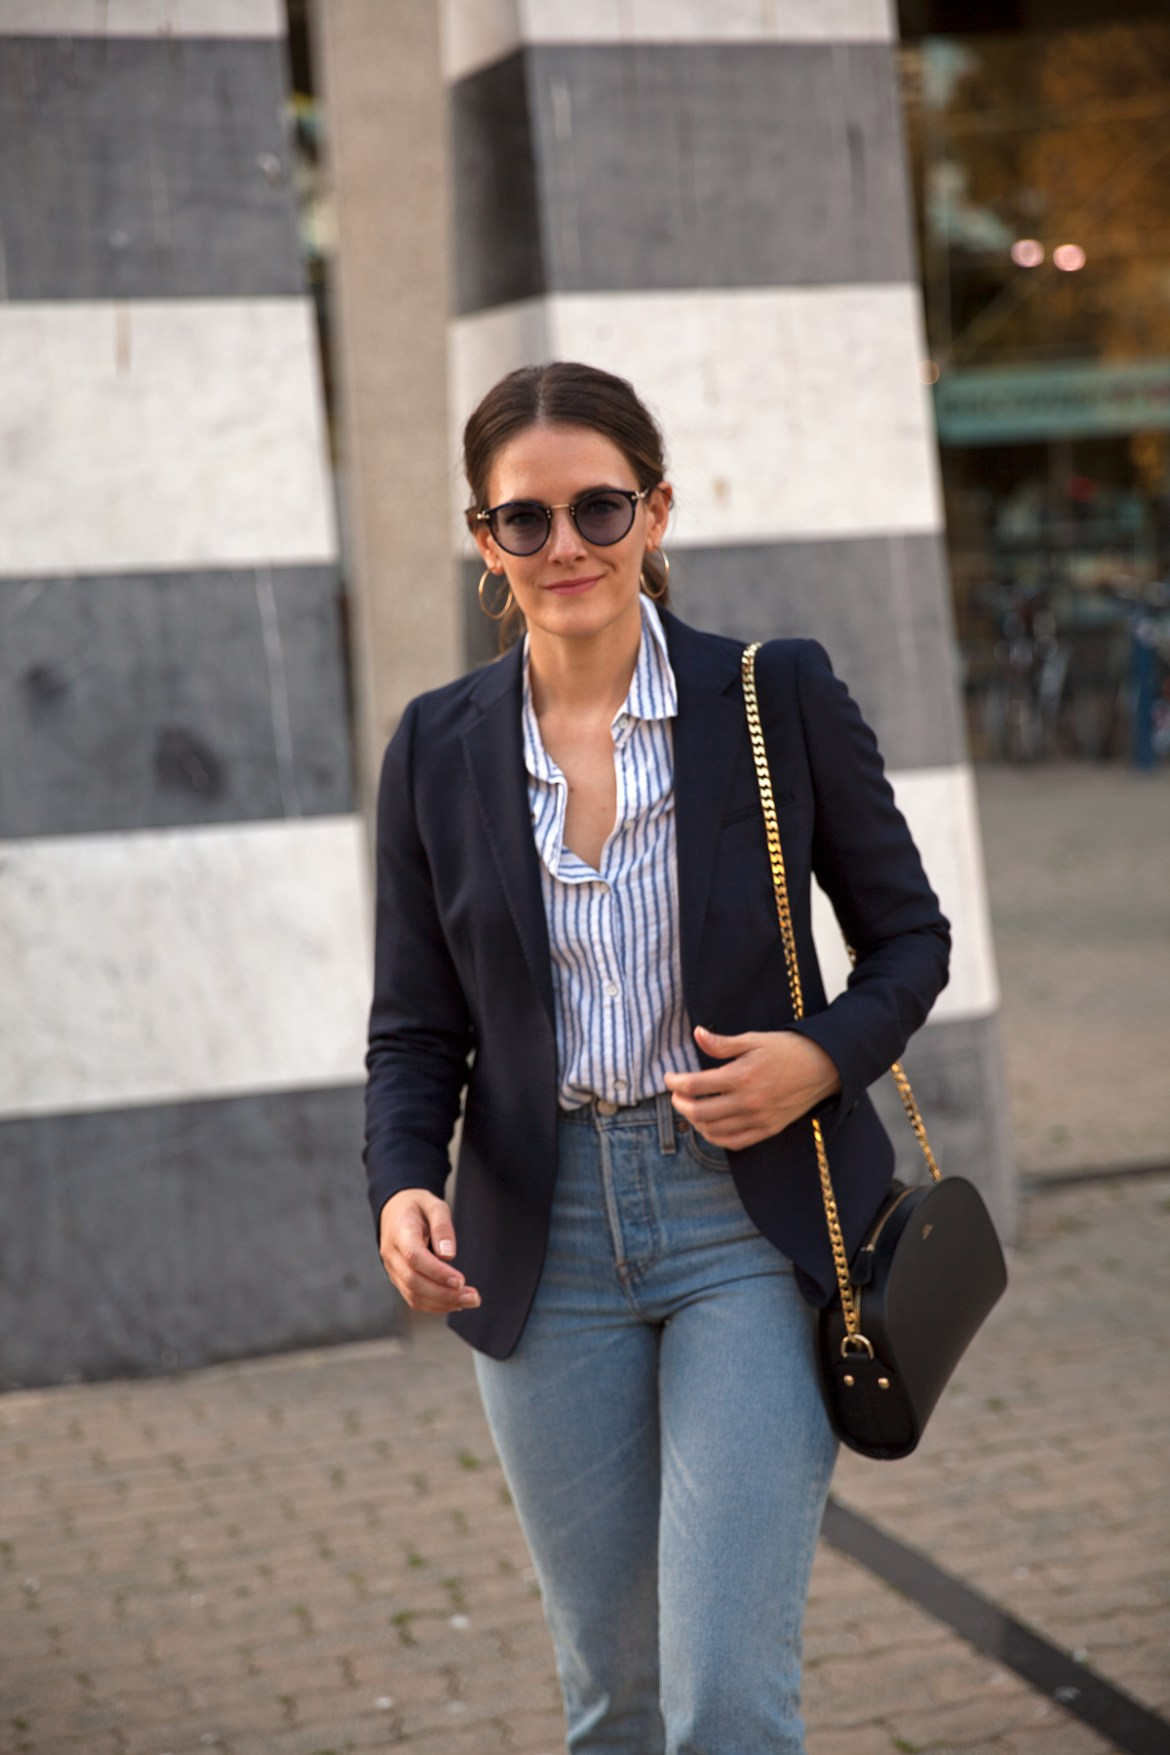 Transitions Colours Lenses in Sapphire worn with navy blazer, A.P.C half moon bag Levi's jeans by Inspiring Wit blogger Jenelle street style